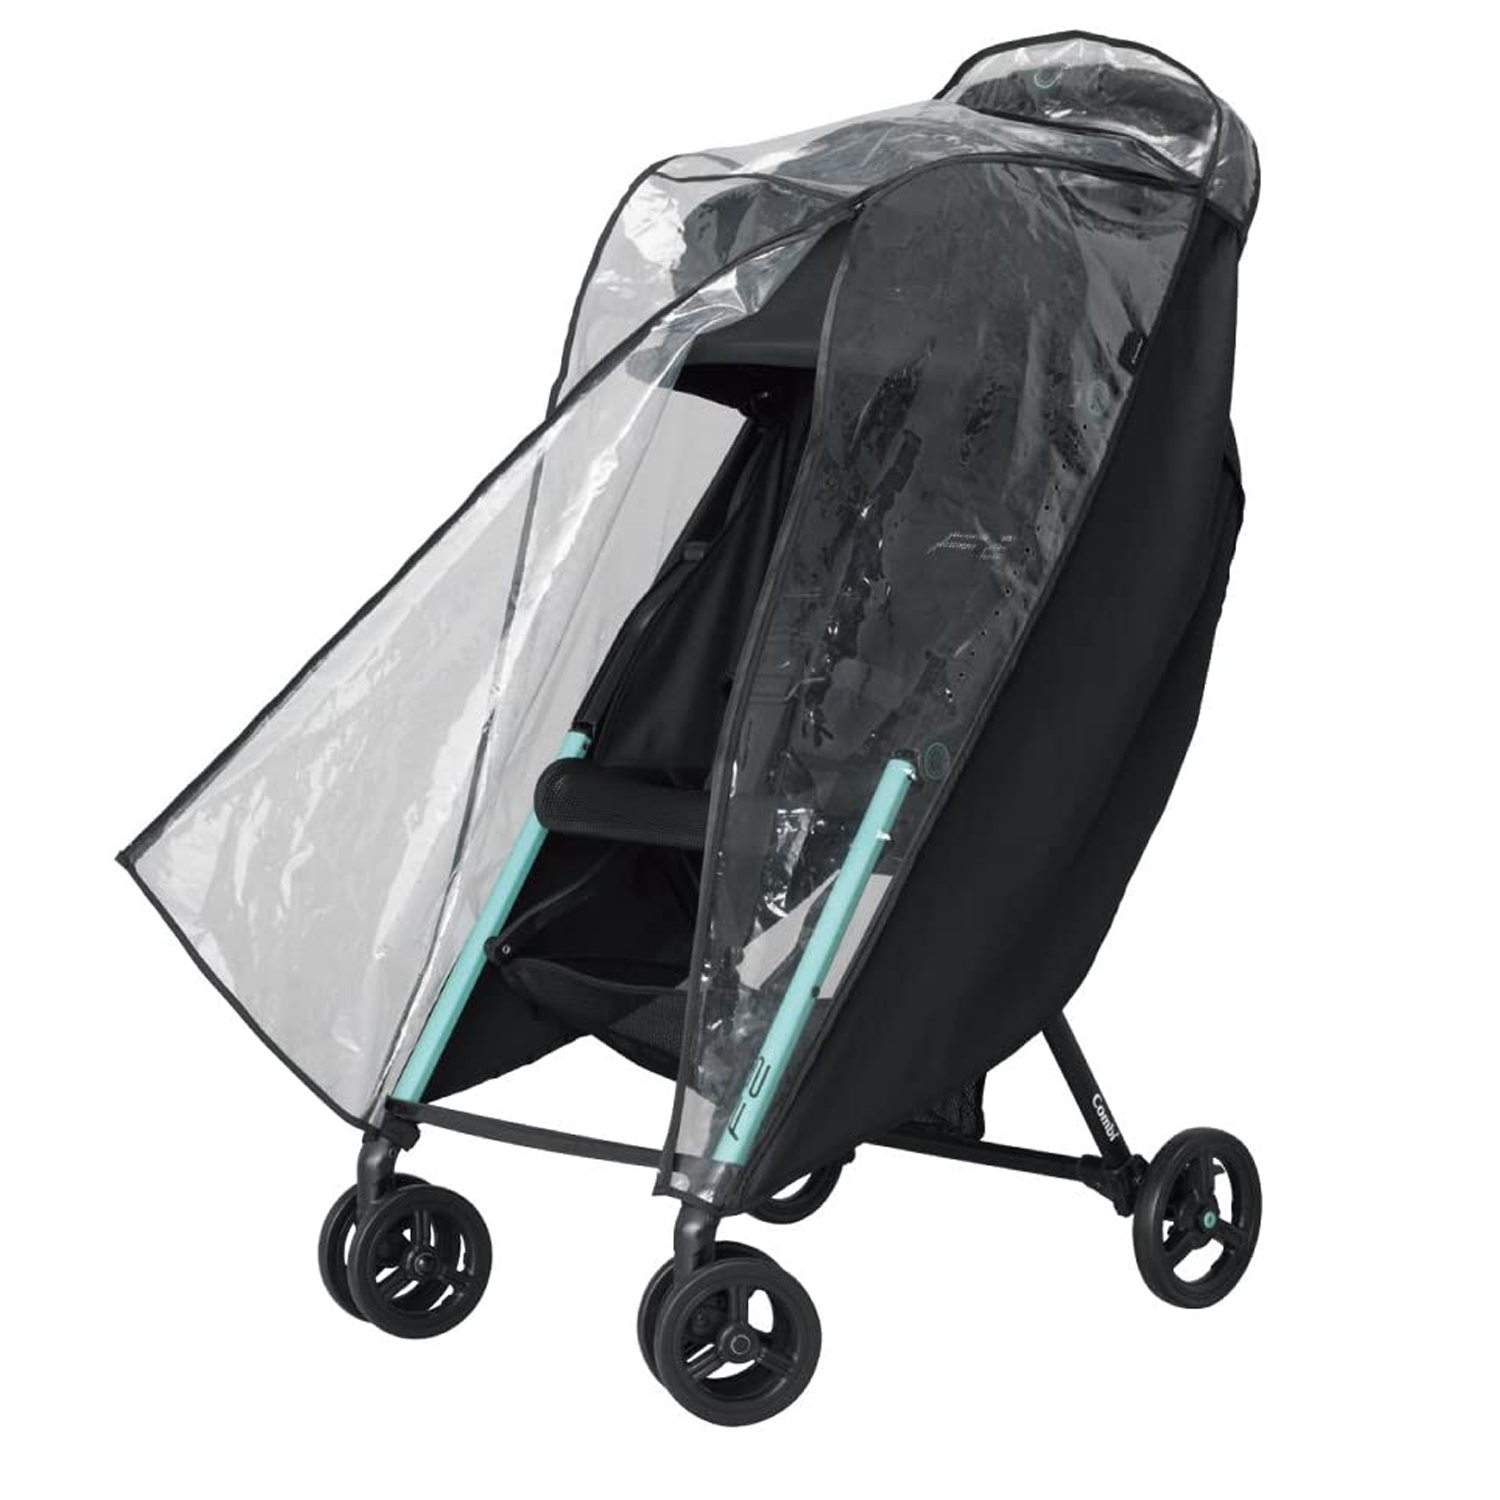 Weather Shield Pushchair Rain Cover | for City Mini 2 (4-Wheel) Single Strollers | Blocks Rain, Snow & Wind